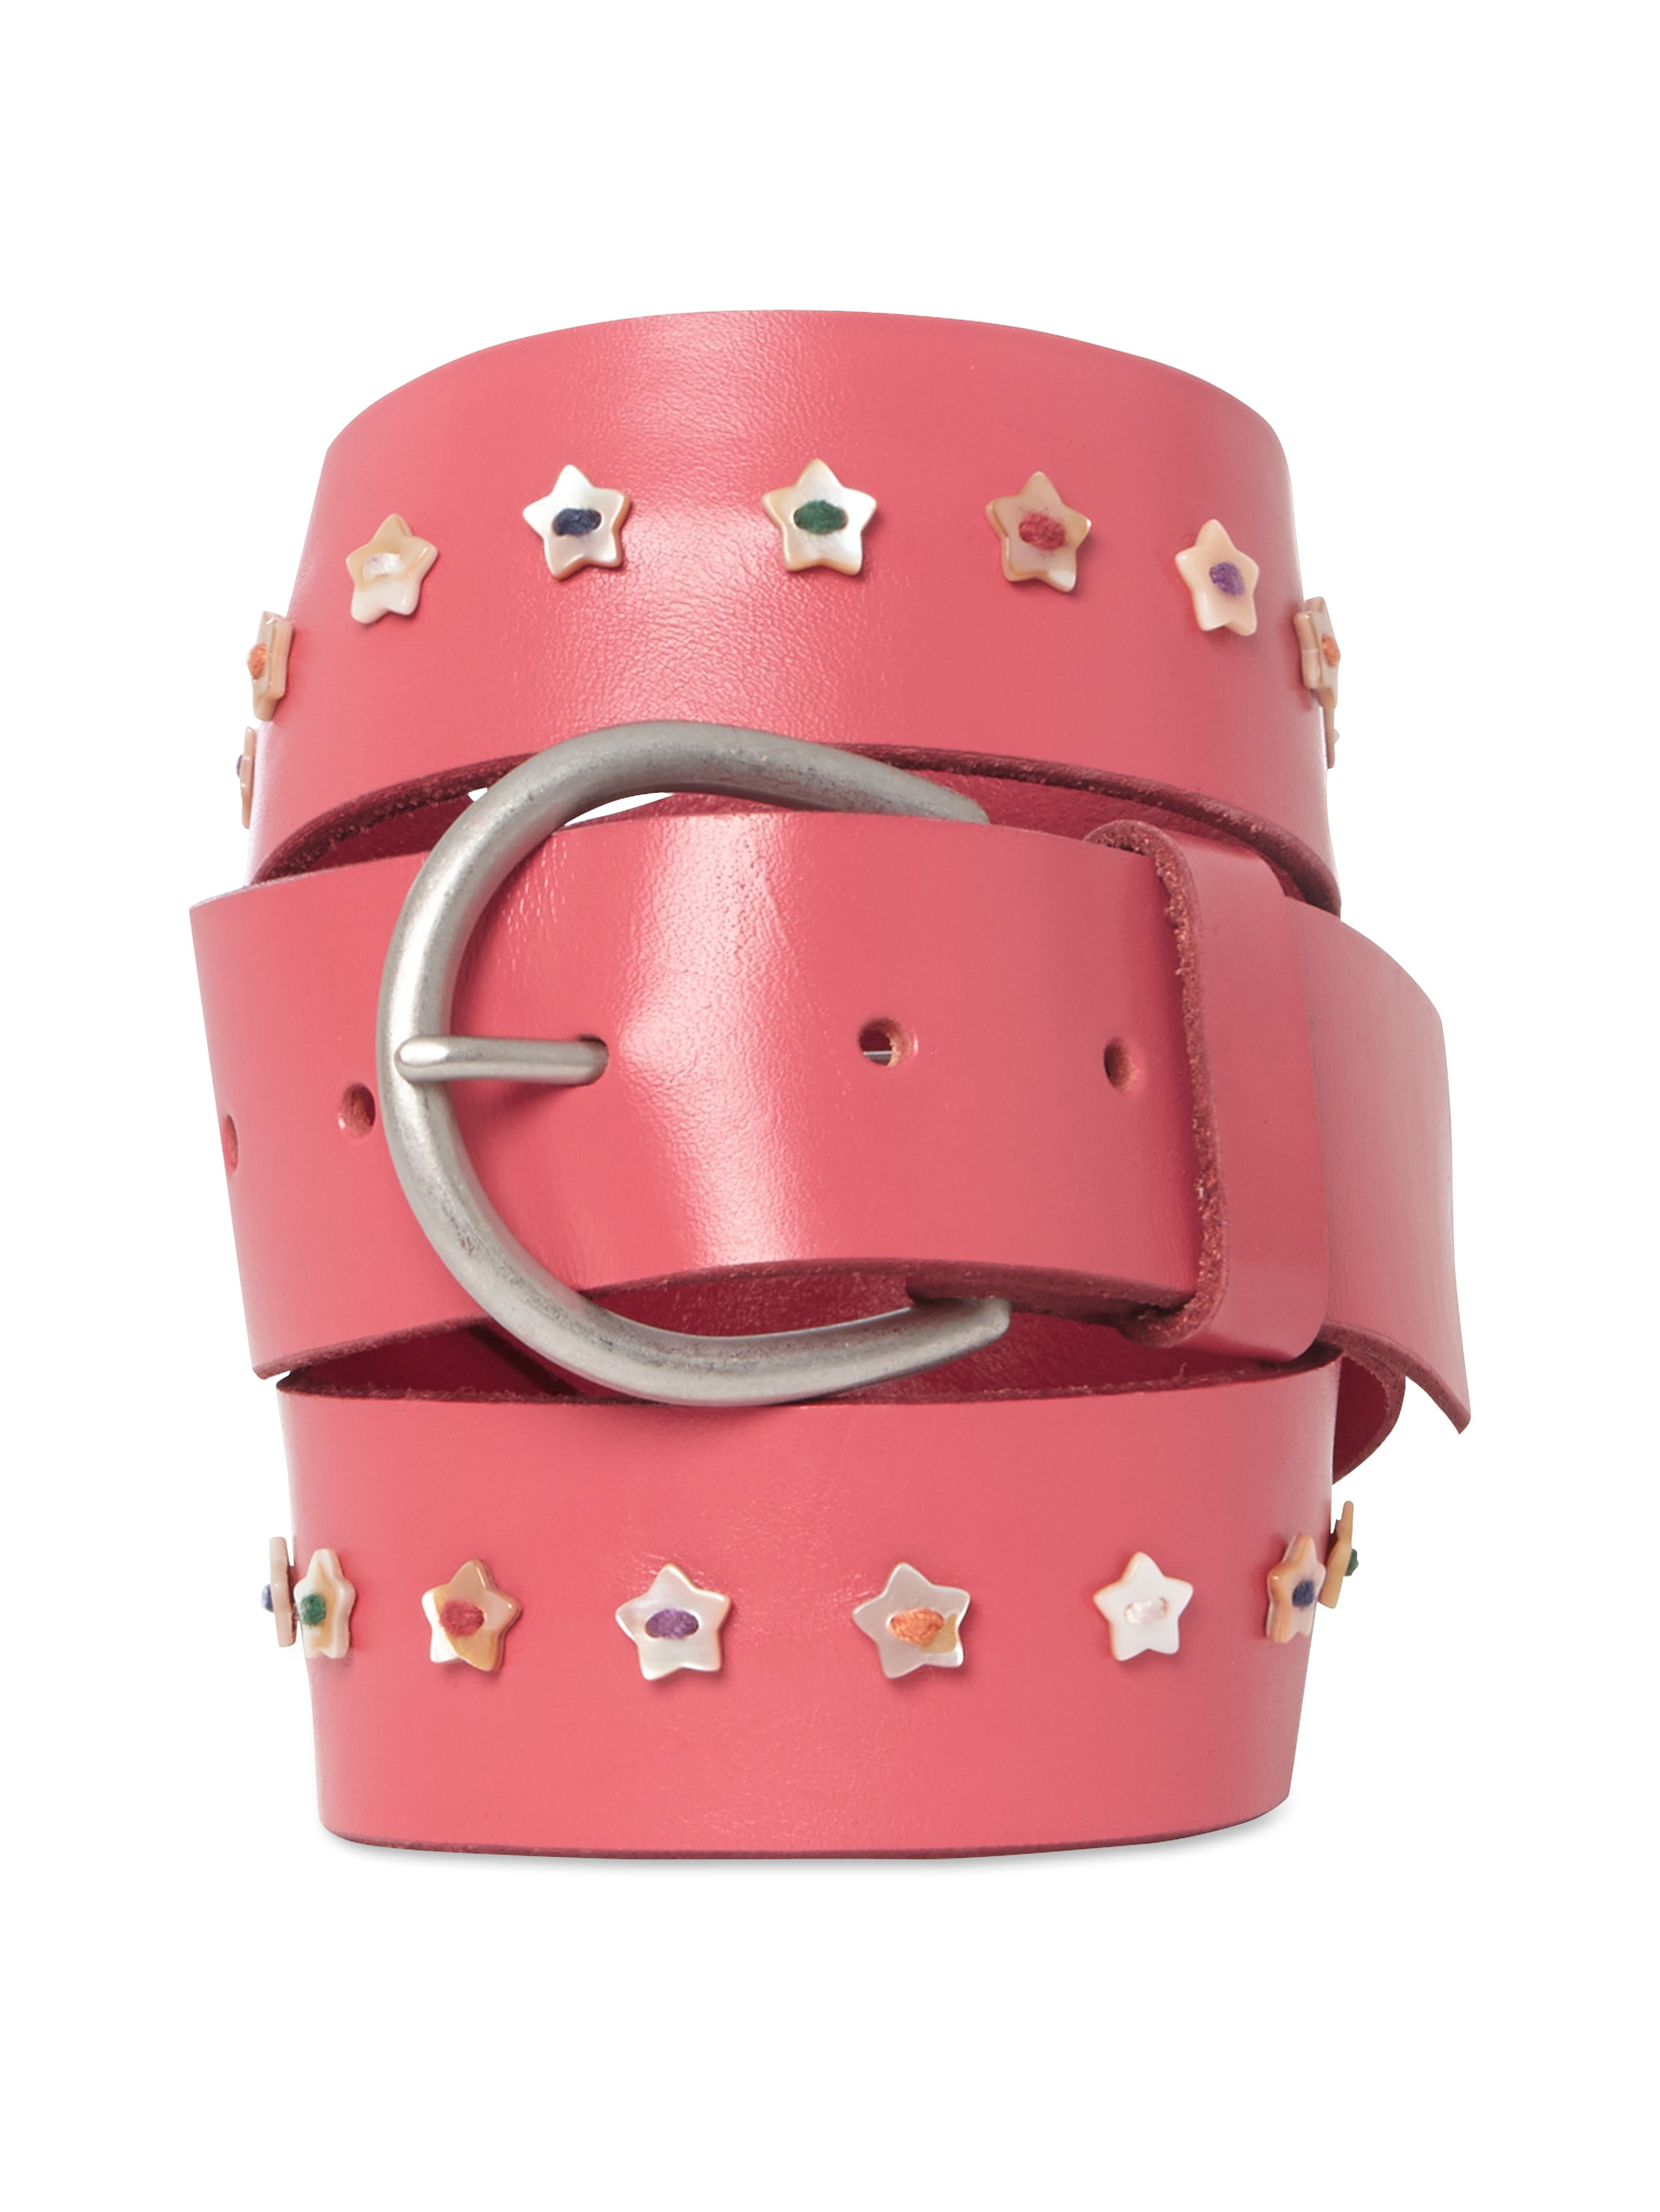 Star button belt